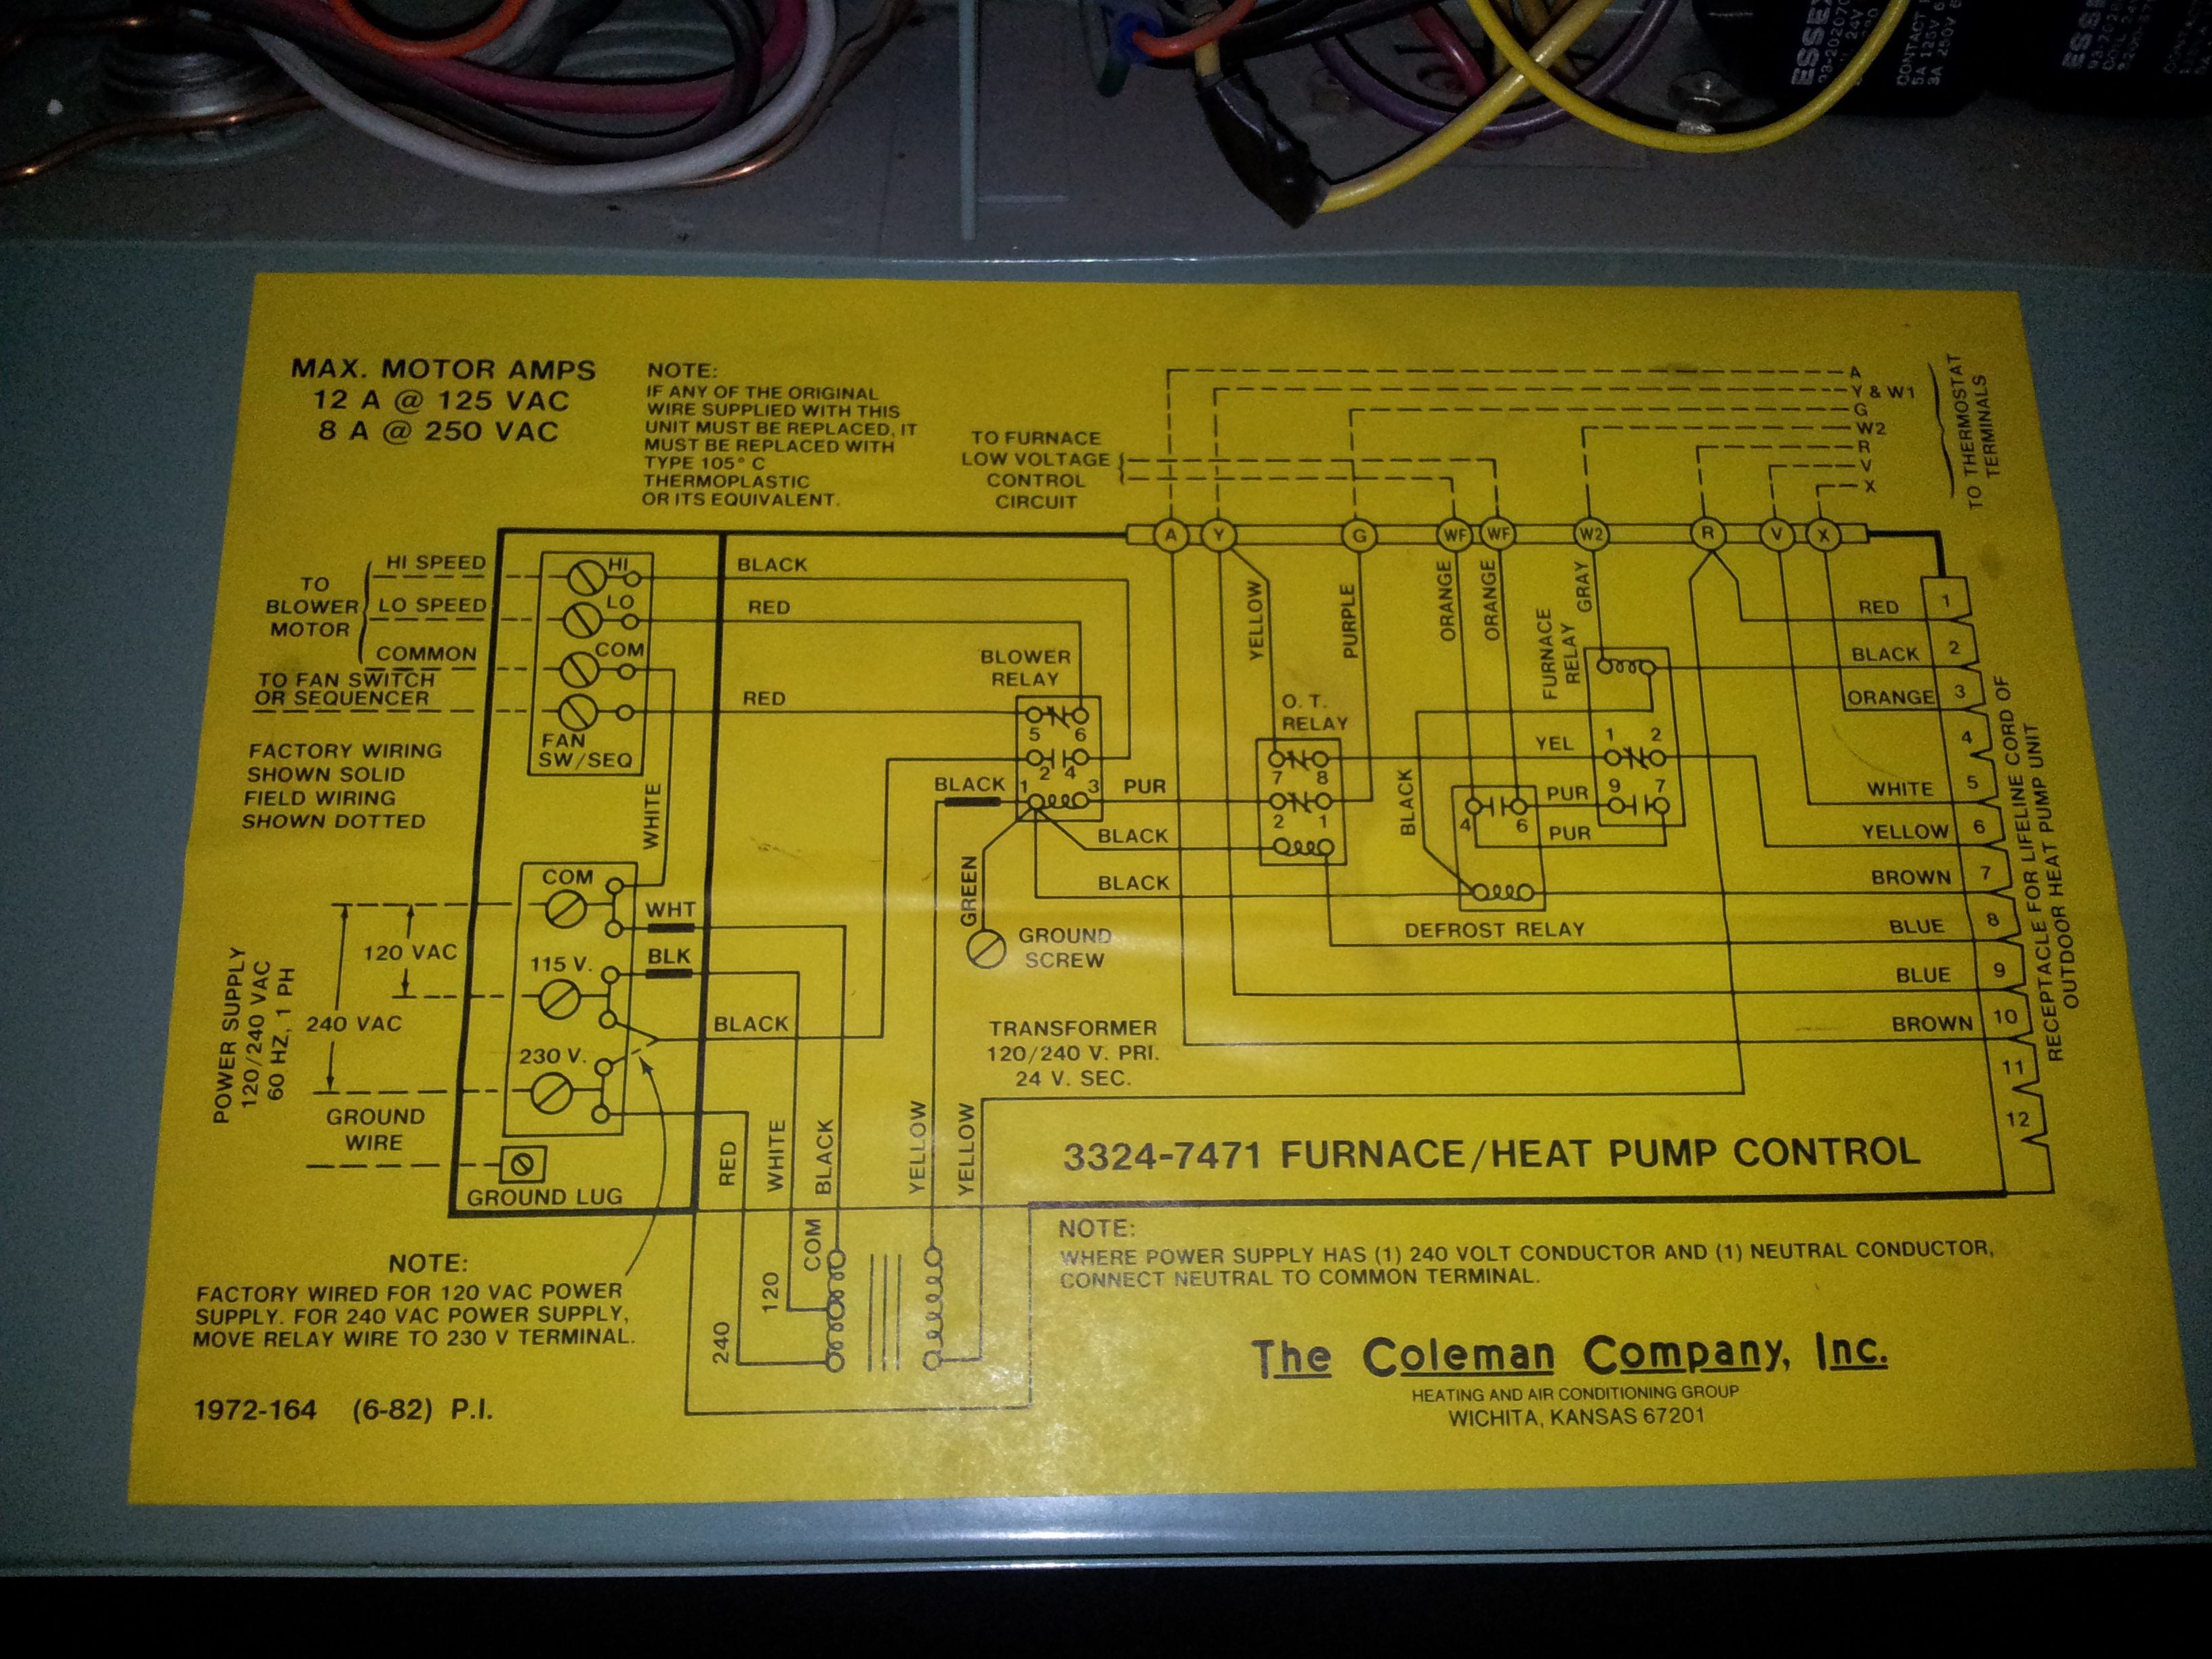 2012 08 07_020543_20120806_170817 wiring diagram for coleman gas furnace the wiring diagram coleman air conditioner wiring diagram at edmiracle.co